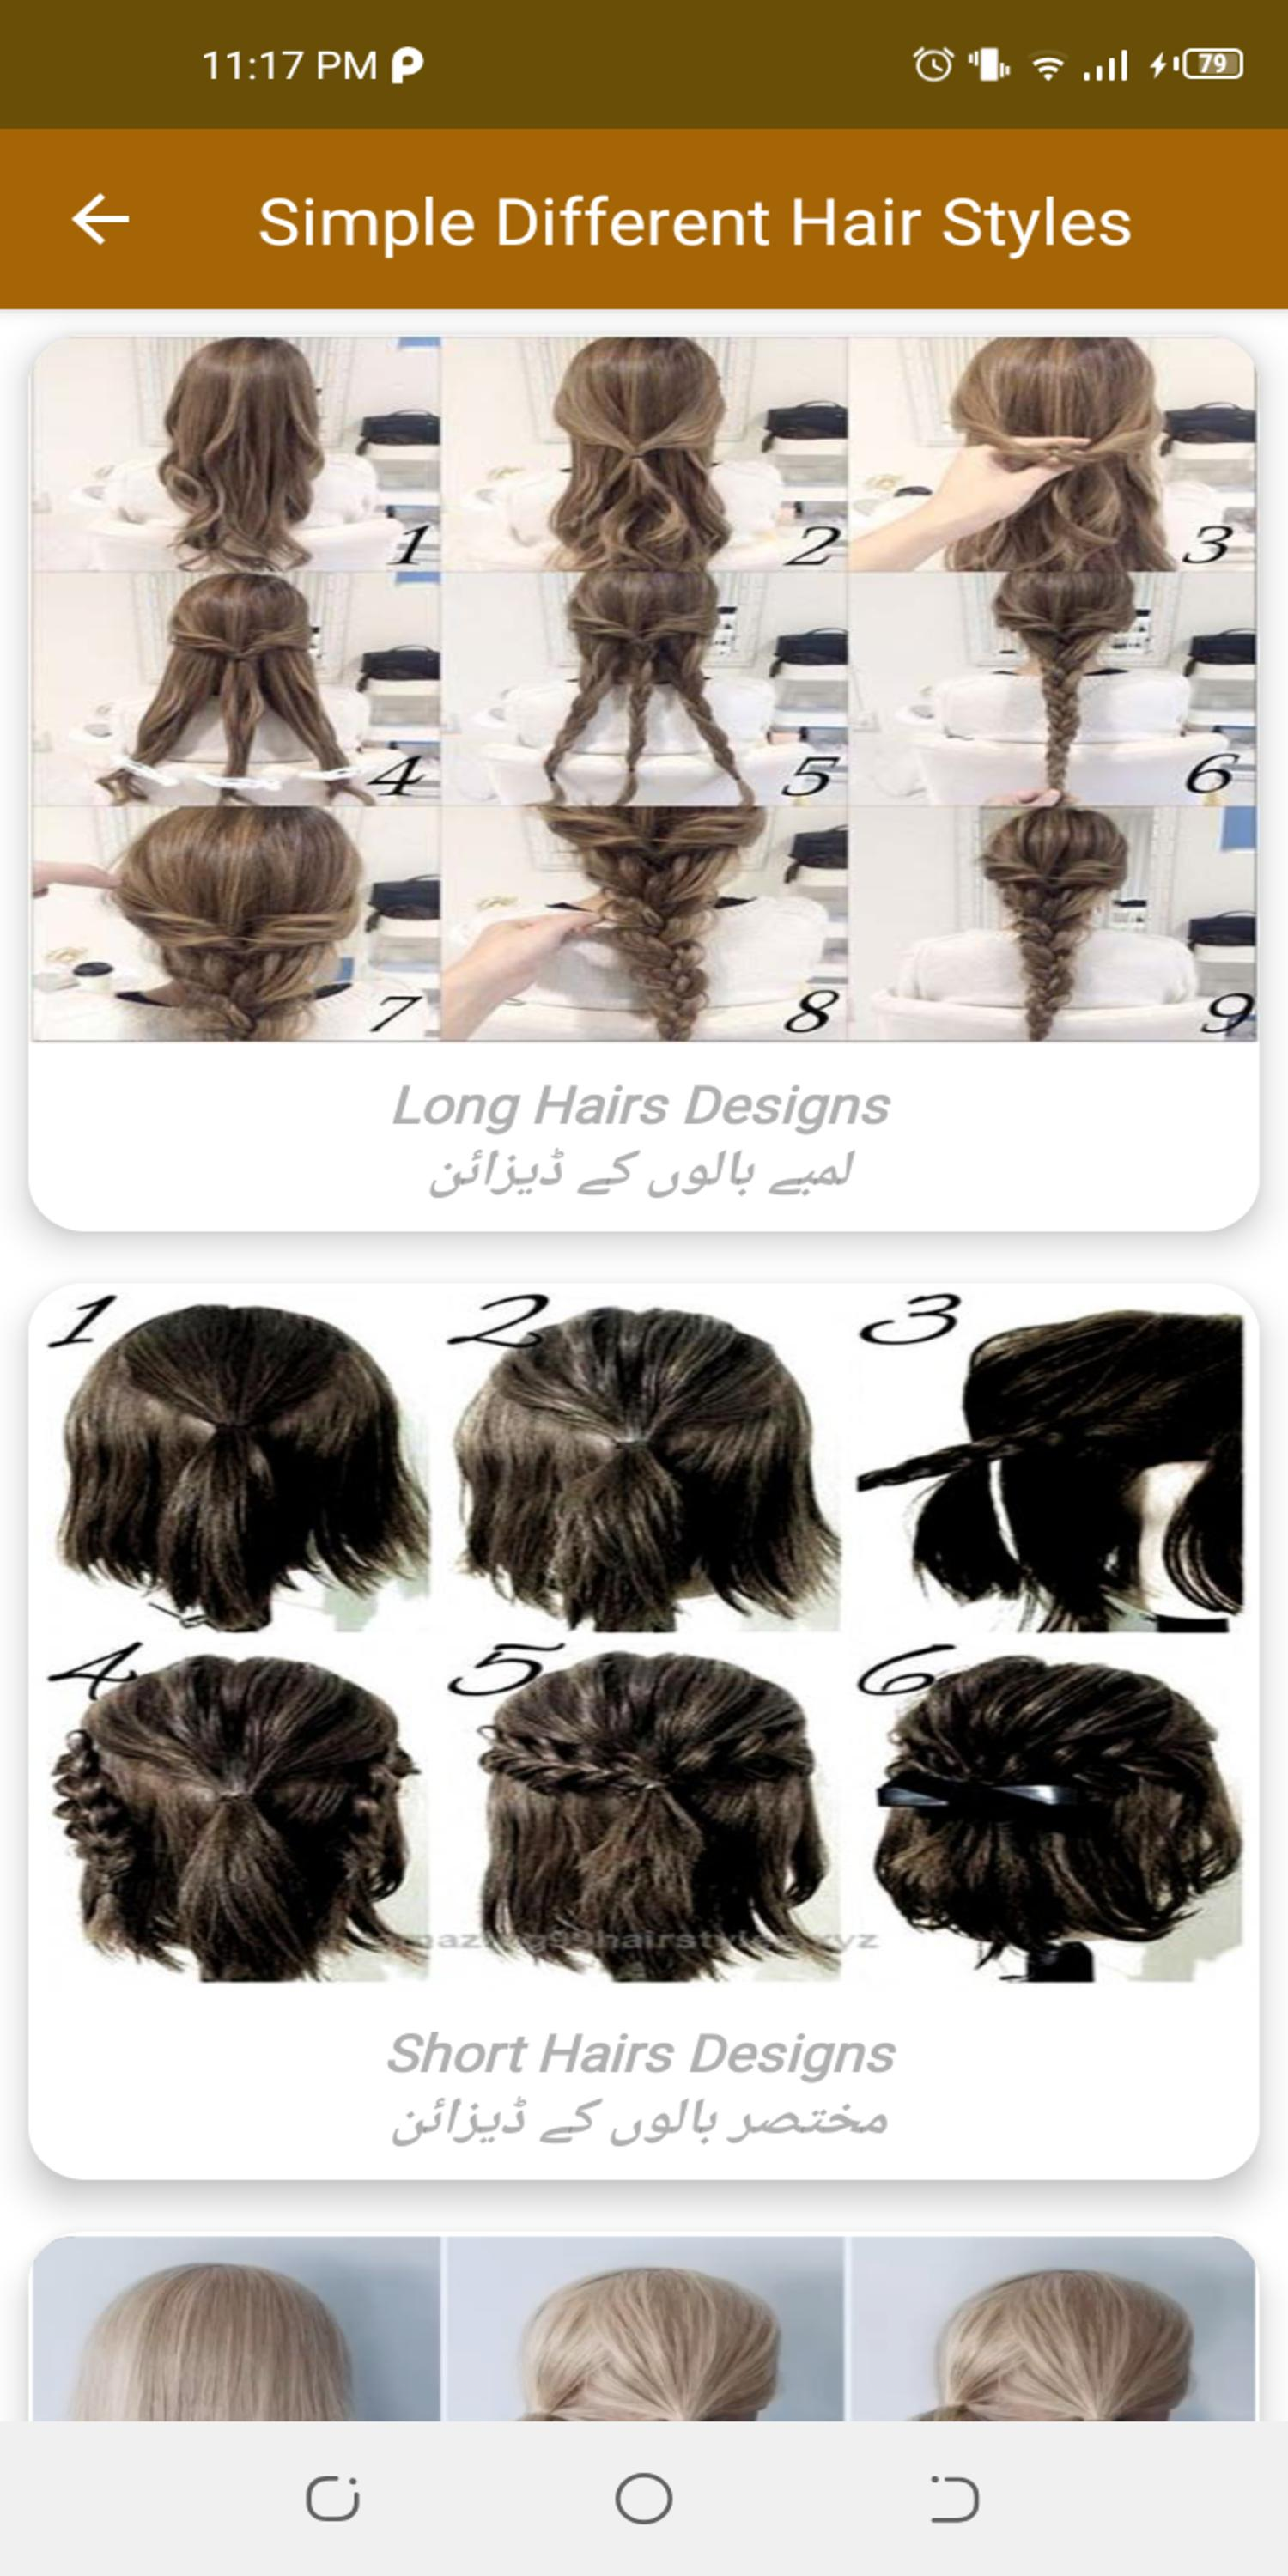 Hair Styles 2020 Hair Style Video Tutorials For Android Apk Download